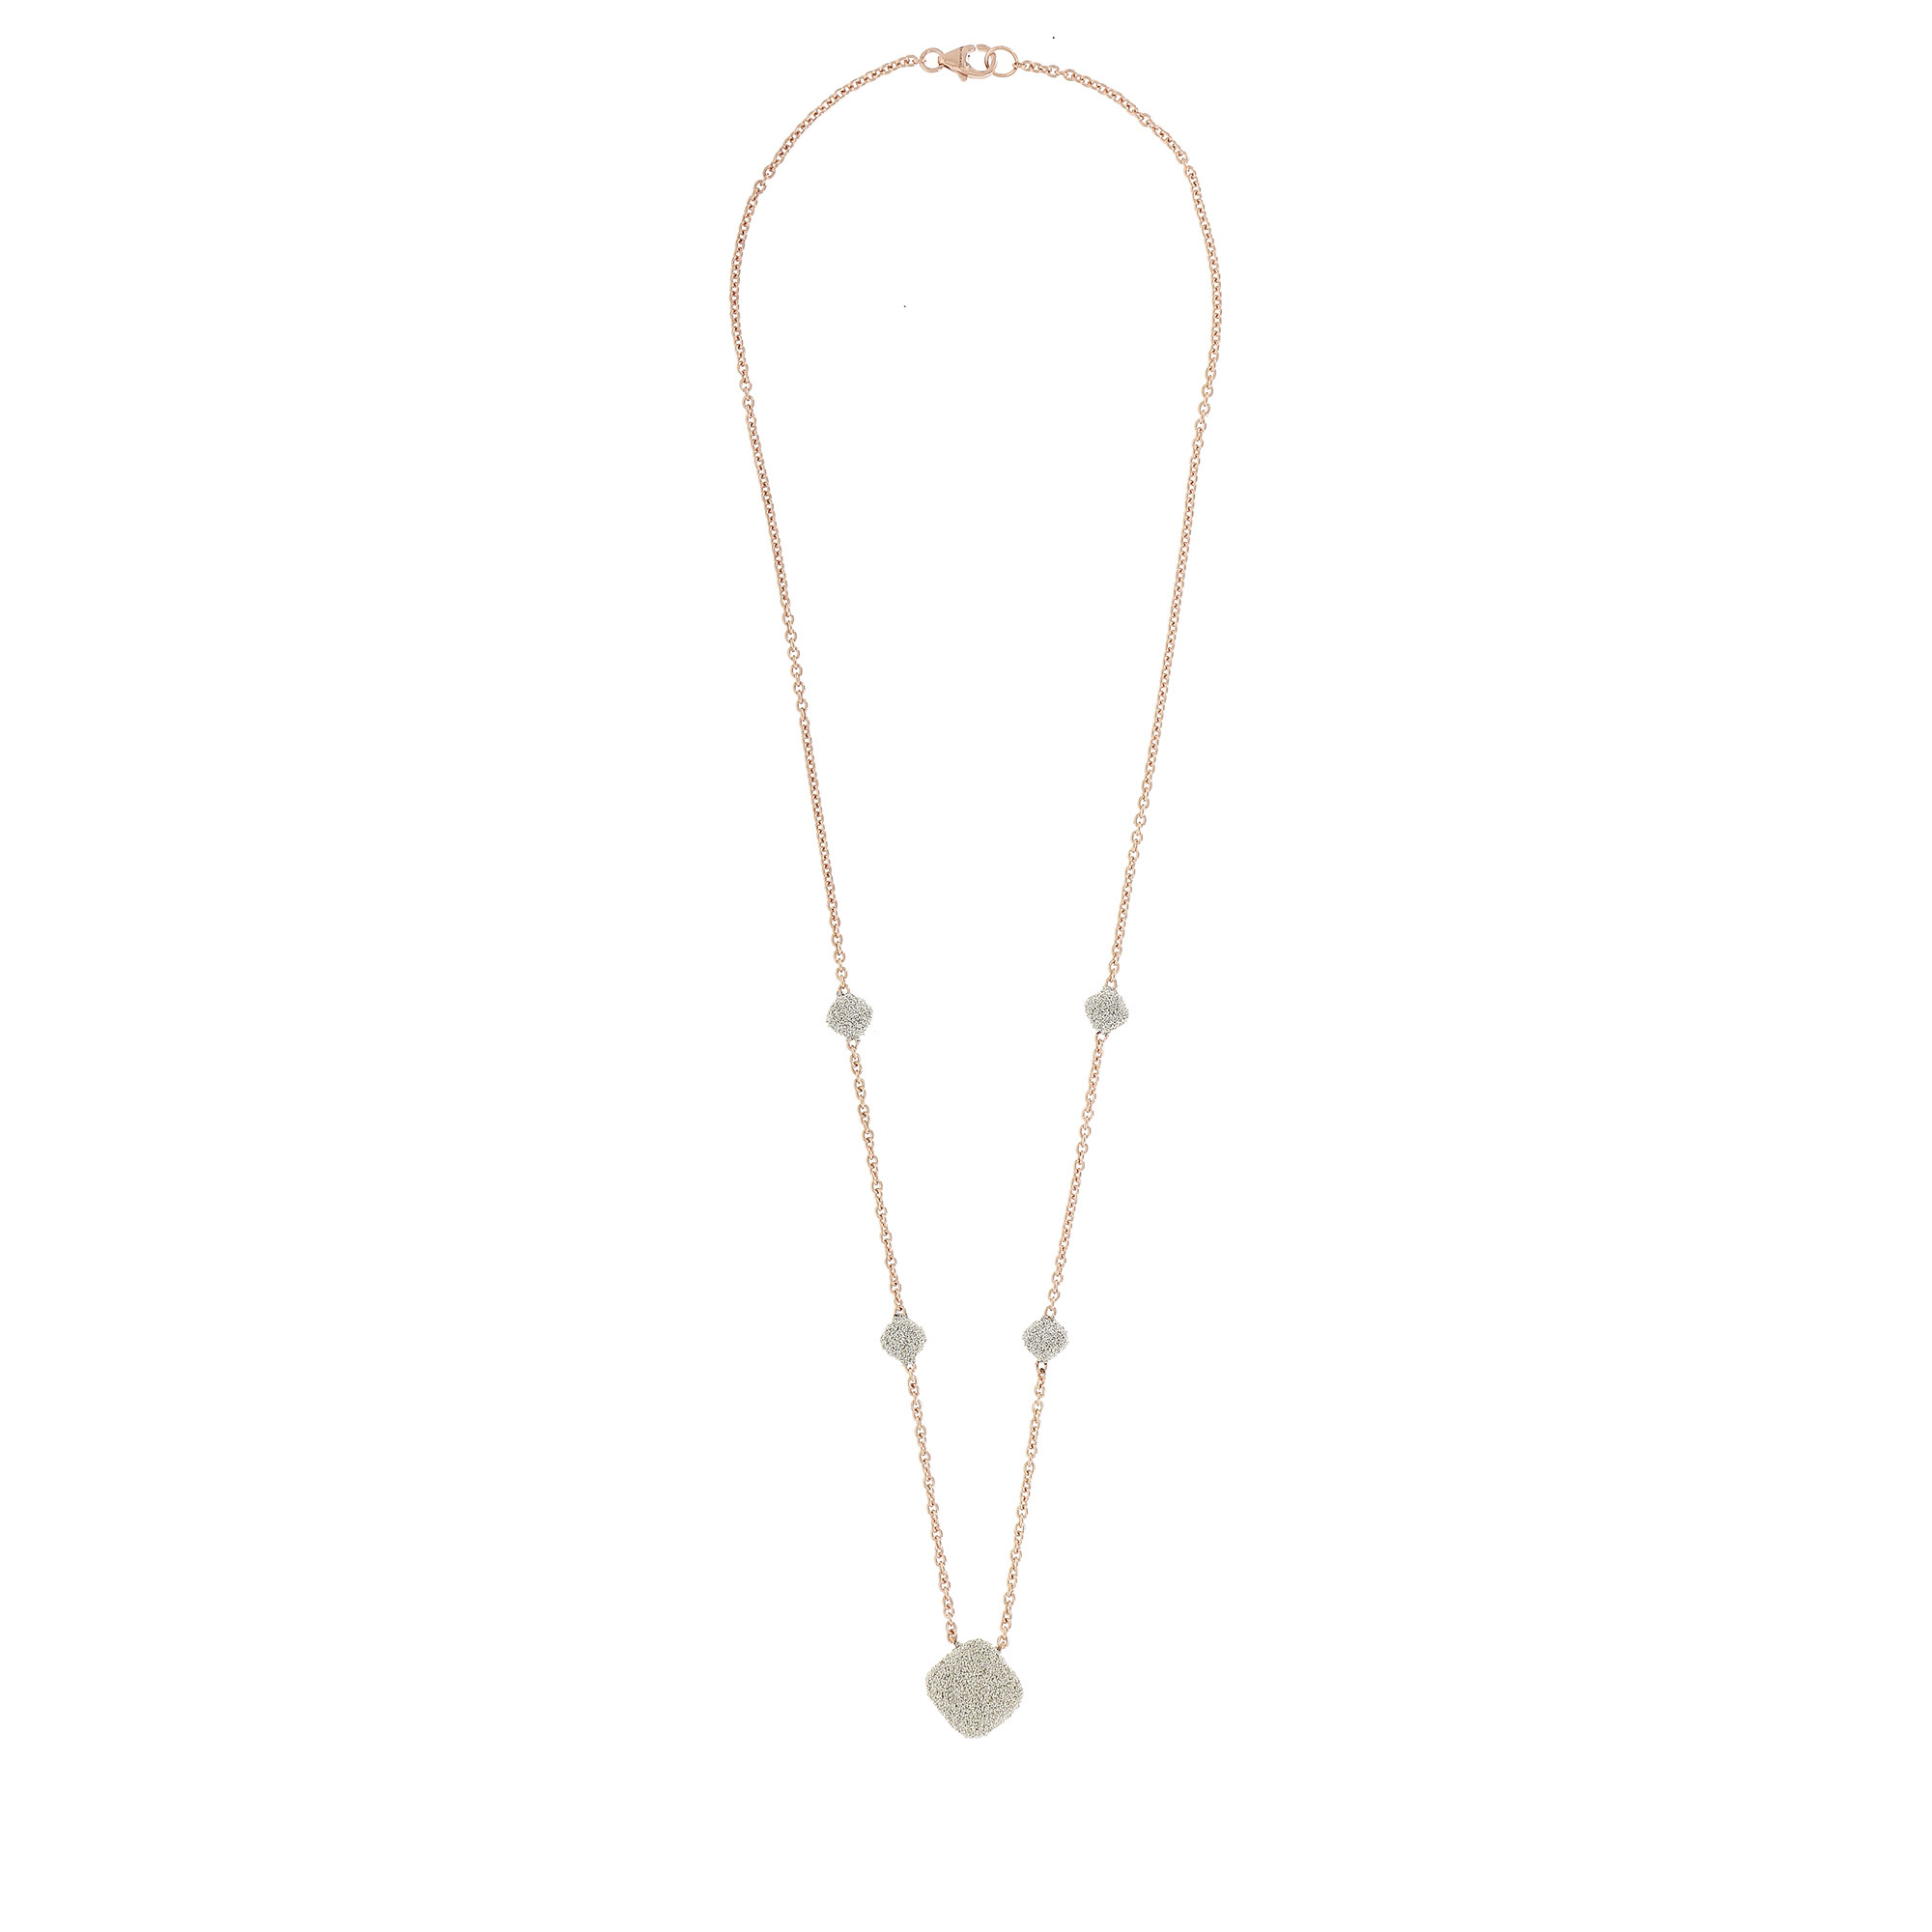 Pesavento 18K Rose Gold   Diamond Dust Gold Necklace with Stones YCKTE003